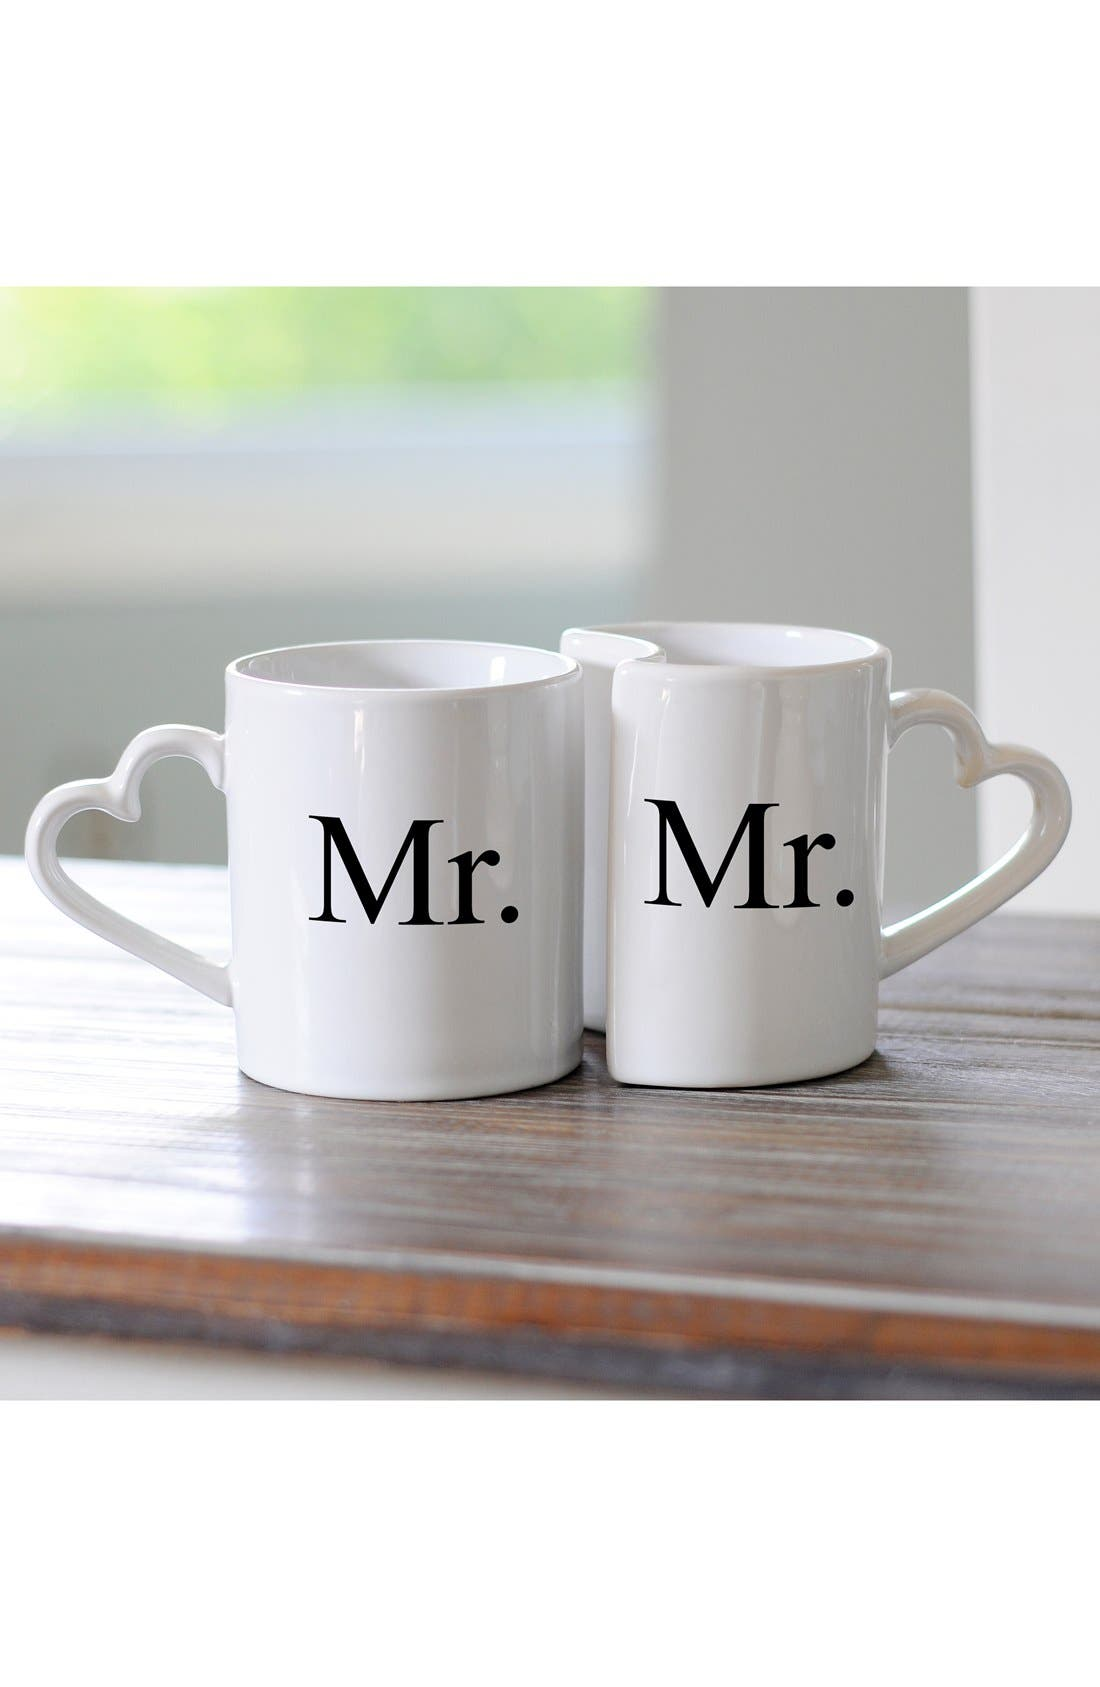 Cathy's Concepts 'For the Couple' Ceramic Coffee Mugs (Set of 2)